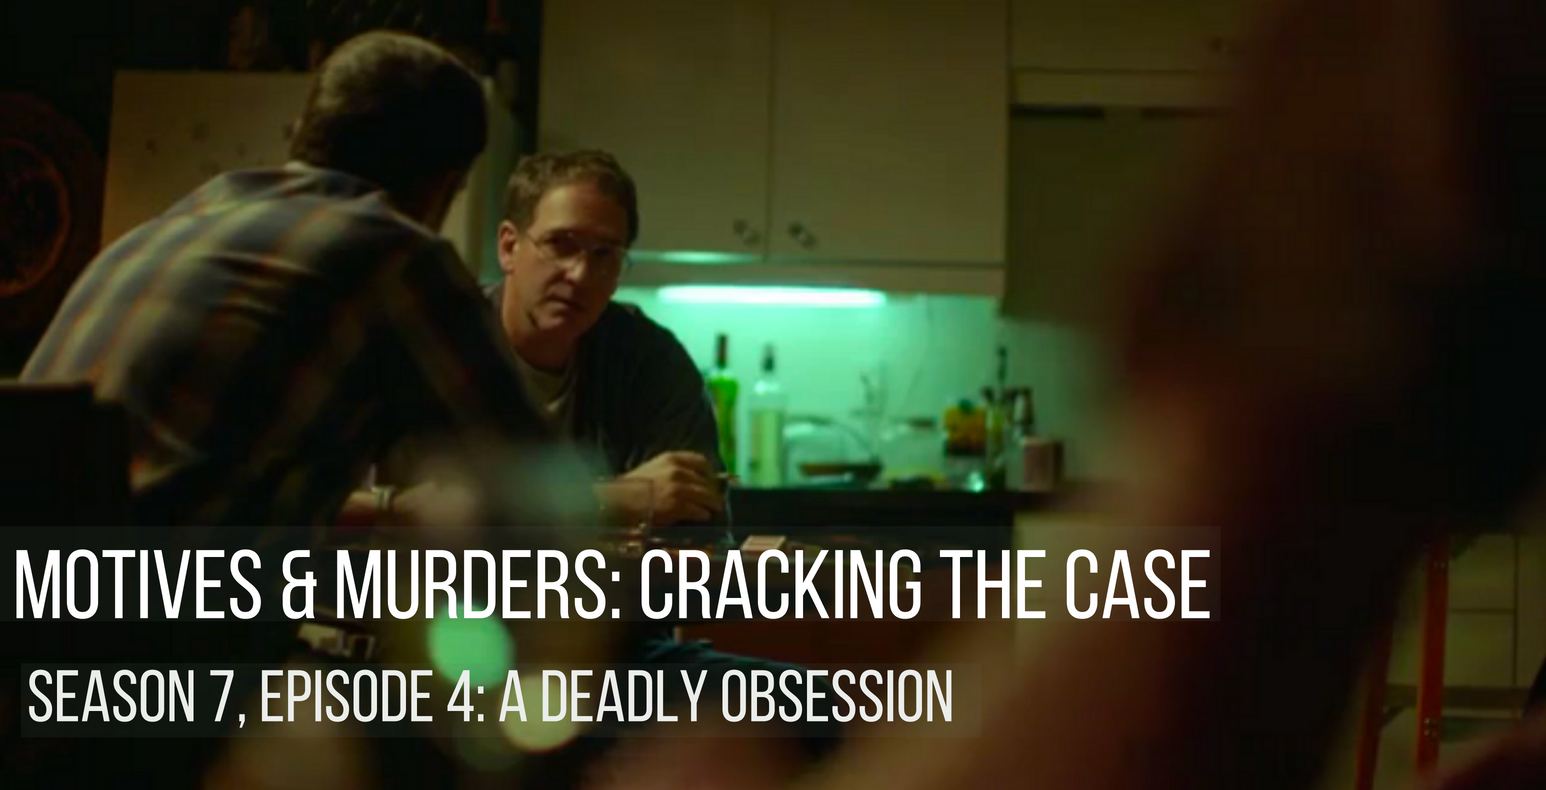 Produced for:   Investigation Discovery    Produced by:   Cineflix Productions    Executive Producer:   Alex Bystram    Showrunner:   Craig Moffit    Production Manager:   Tara Anderson    Field Director:   Lana Gorlitz    Production Coordinator:   Debby Walker